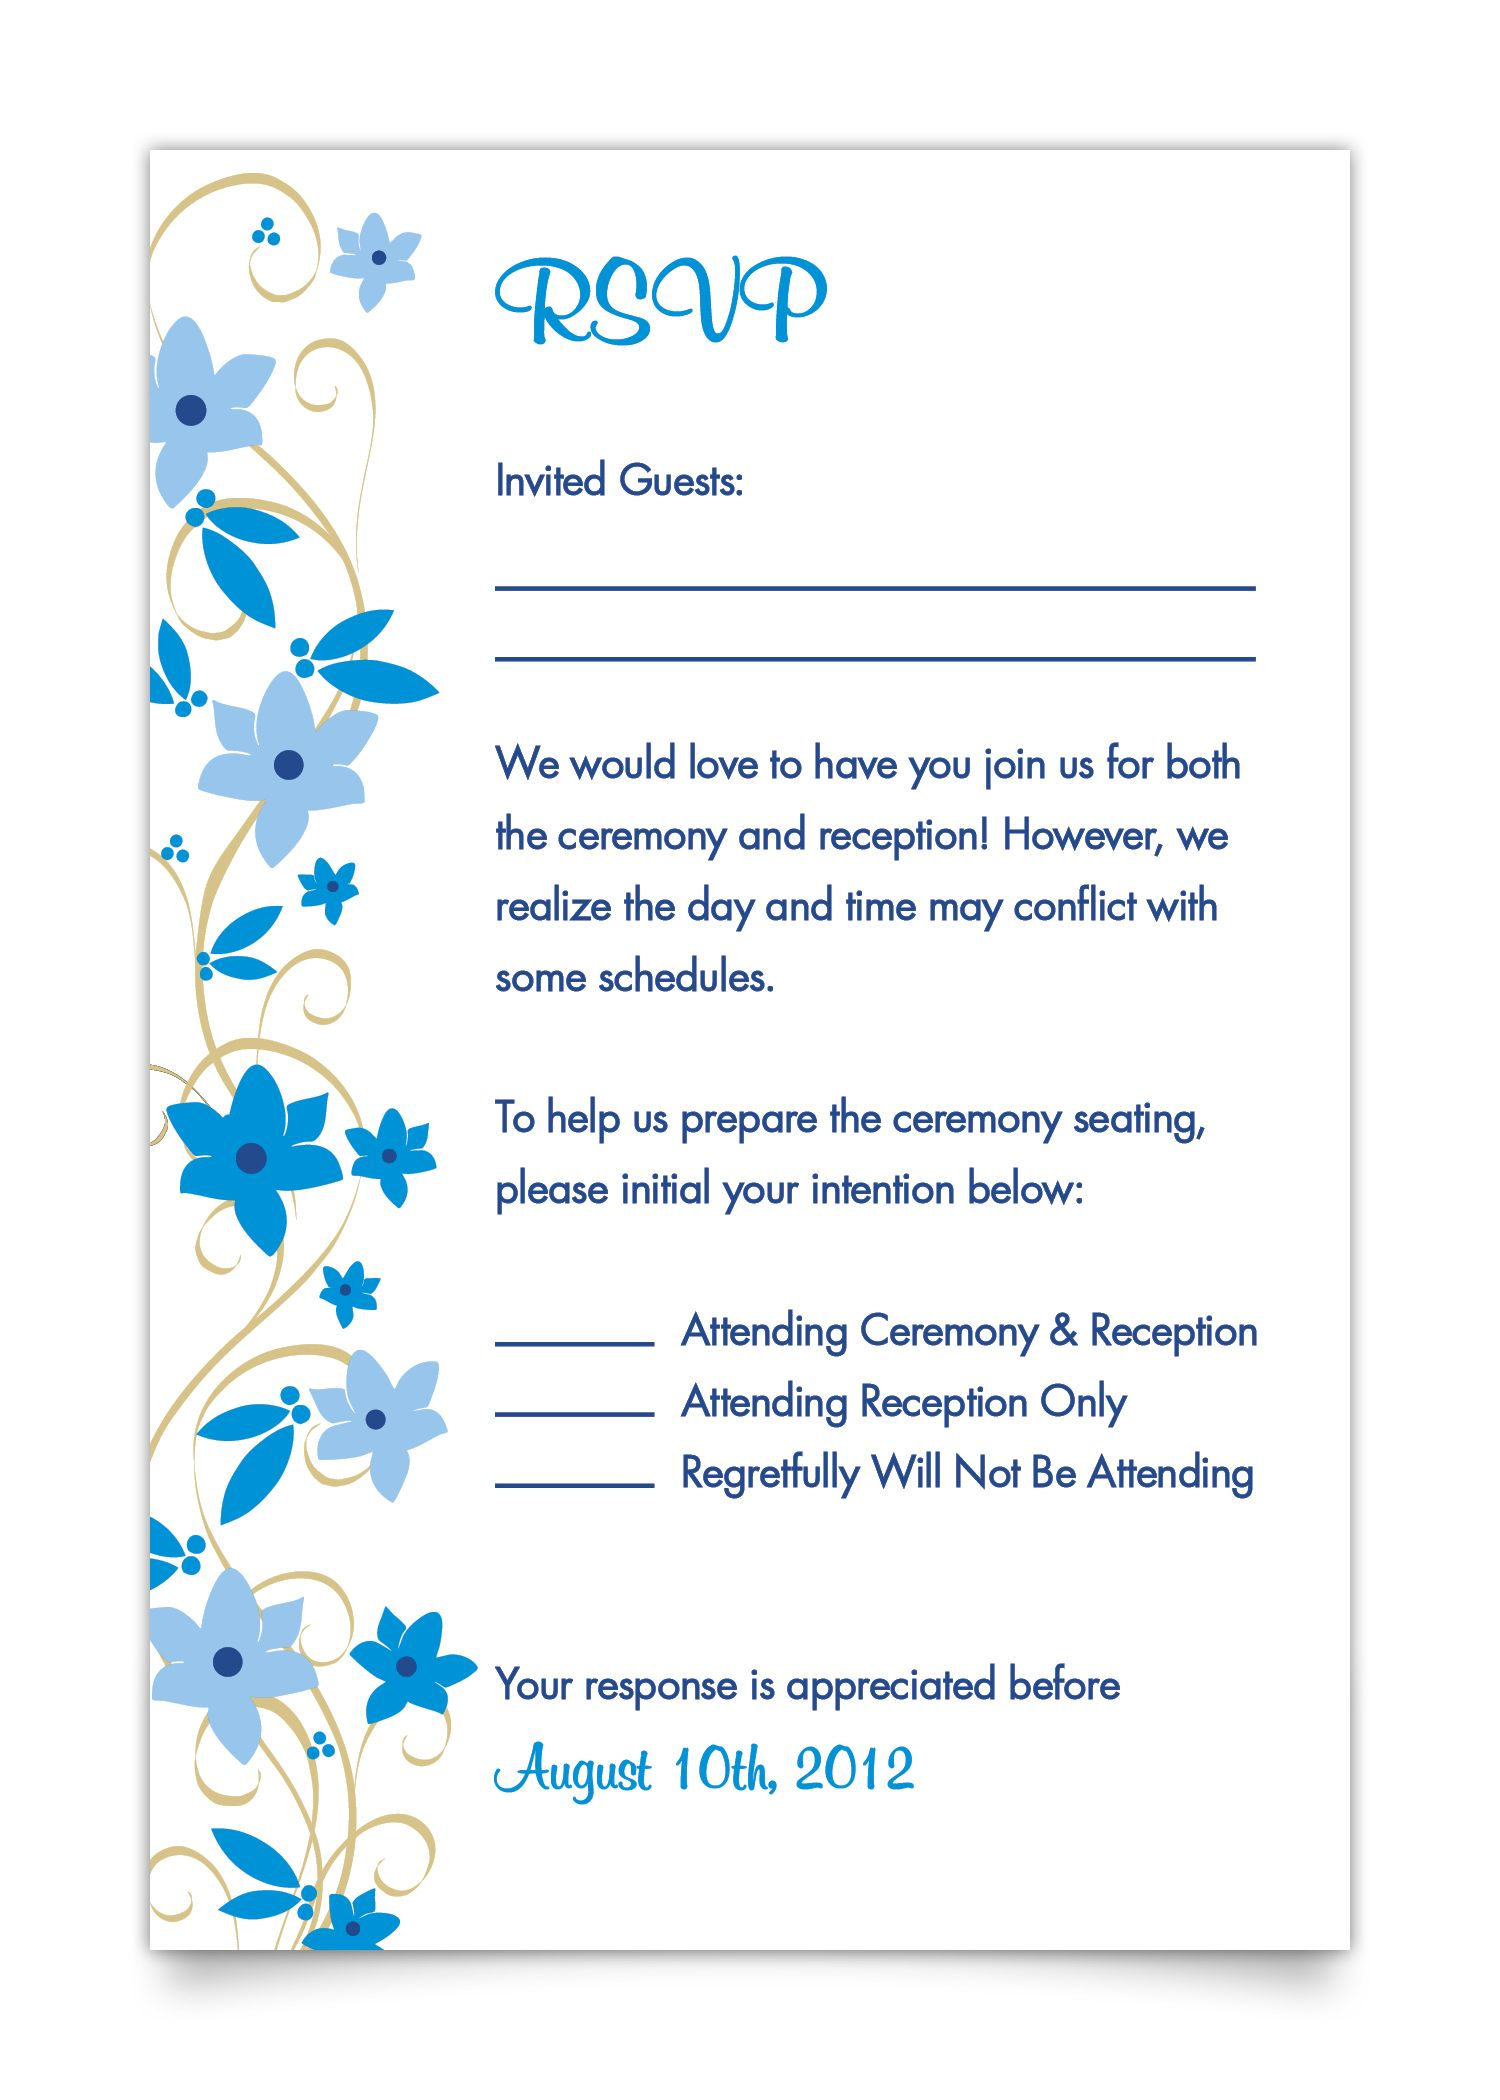 AdultsOnly Wedding Wording Rsvp Wedding And Wedding Wording - Birthday invitation rsvp ideas